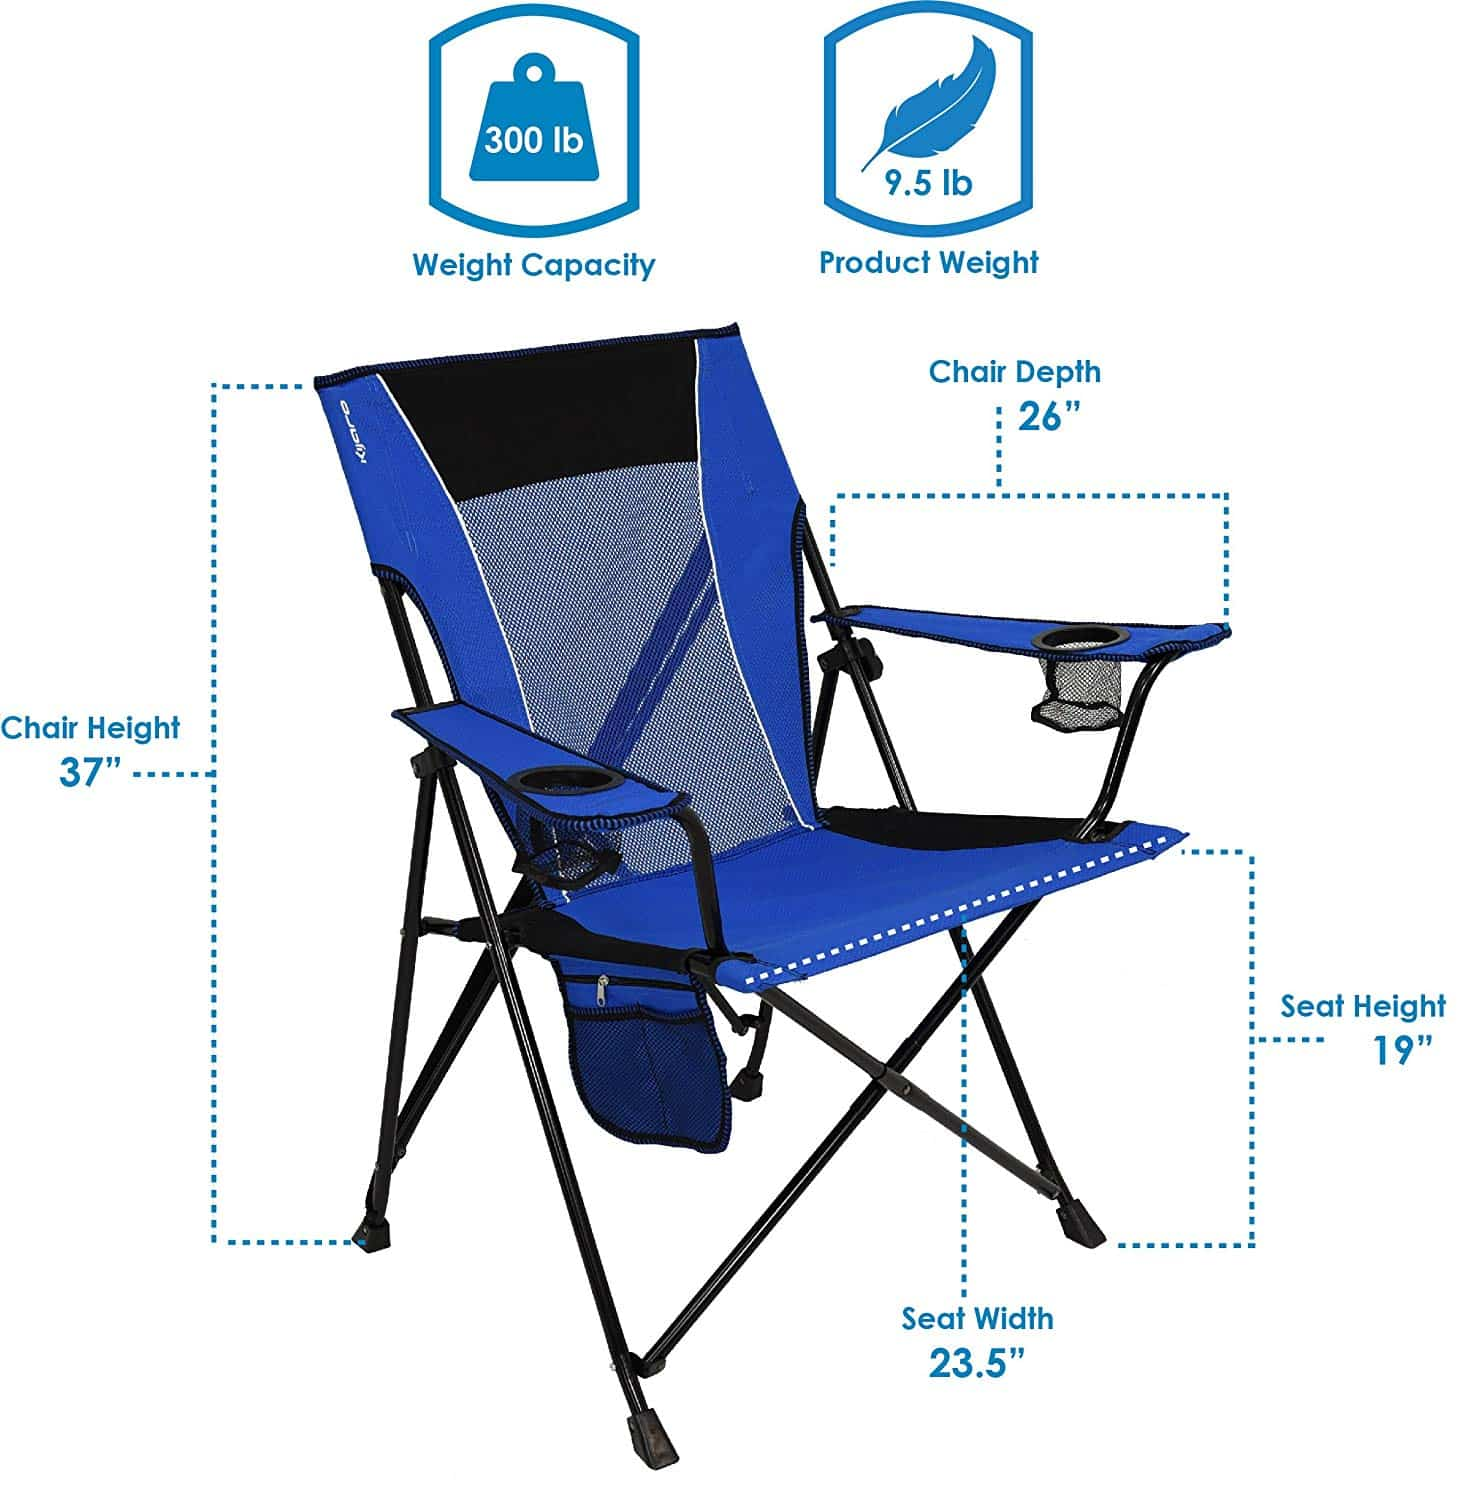 Admirable Top 14 Best Folding Lawn Chairs In 2019 Closeup Check Machost Co Dining Chair Design Ideas Machostcouk